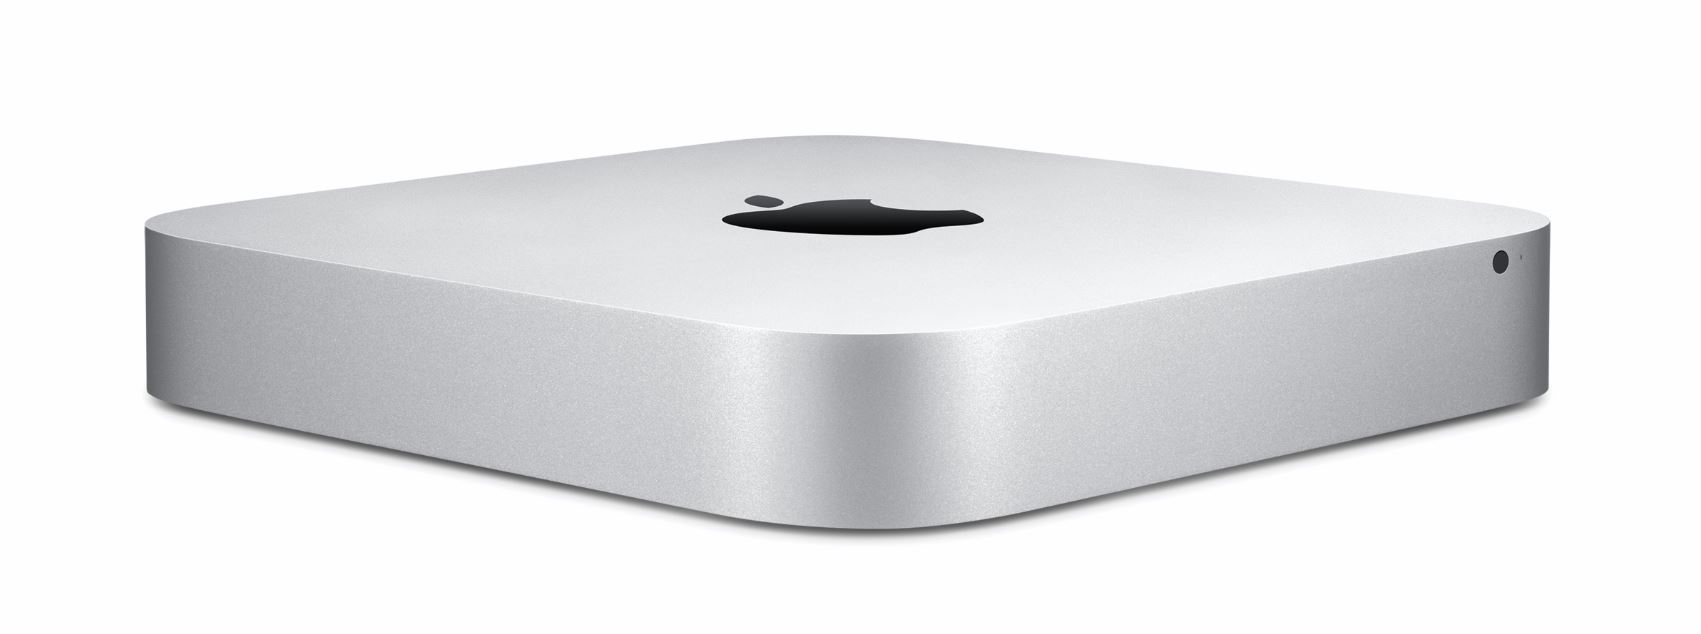 apple der mac mini wird eine wichtige rolle in zukunft. Black Bedroom Furniture Sets. Home Design Ideas